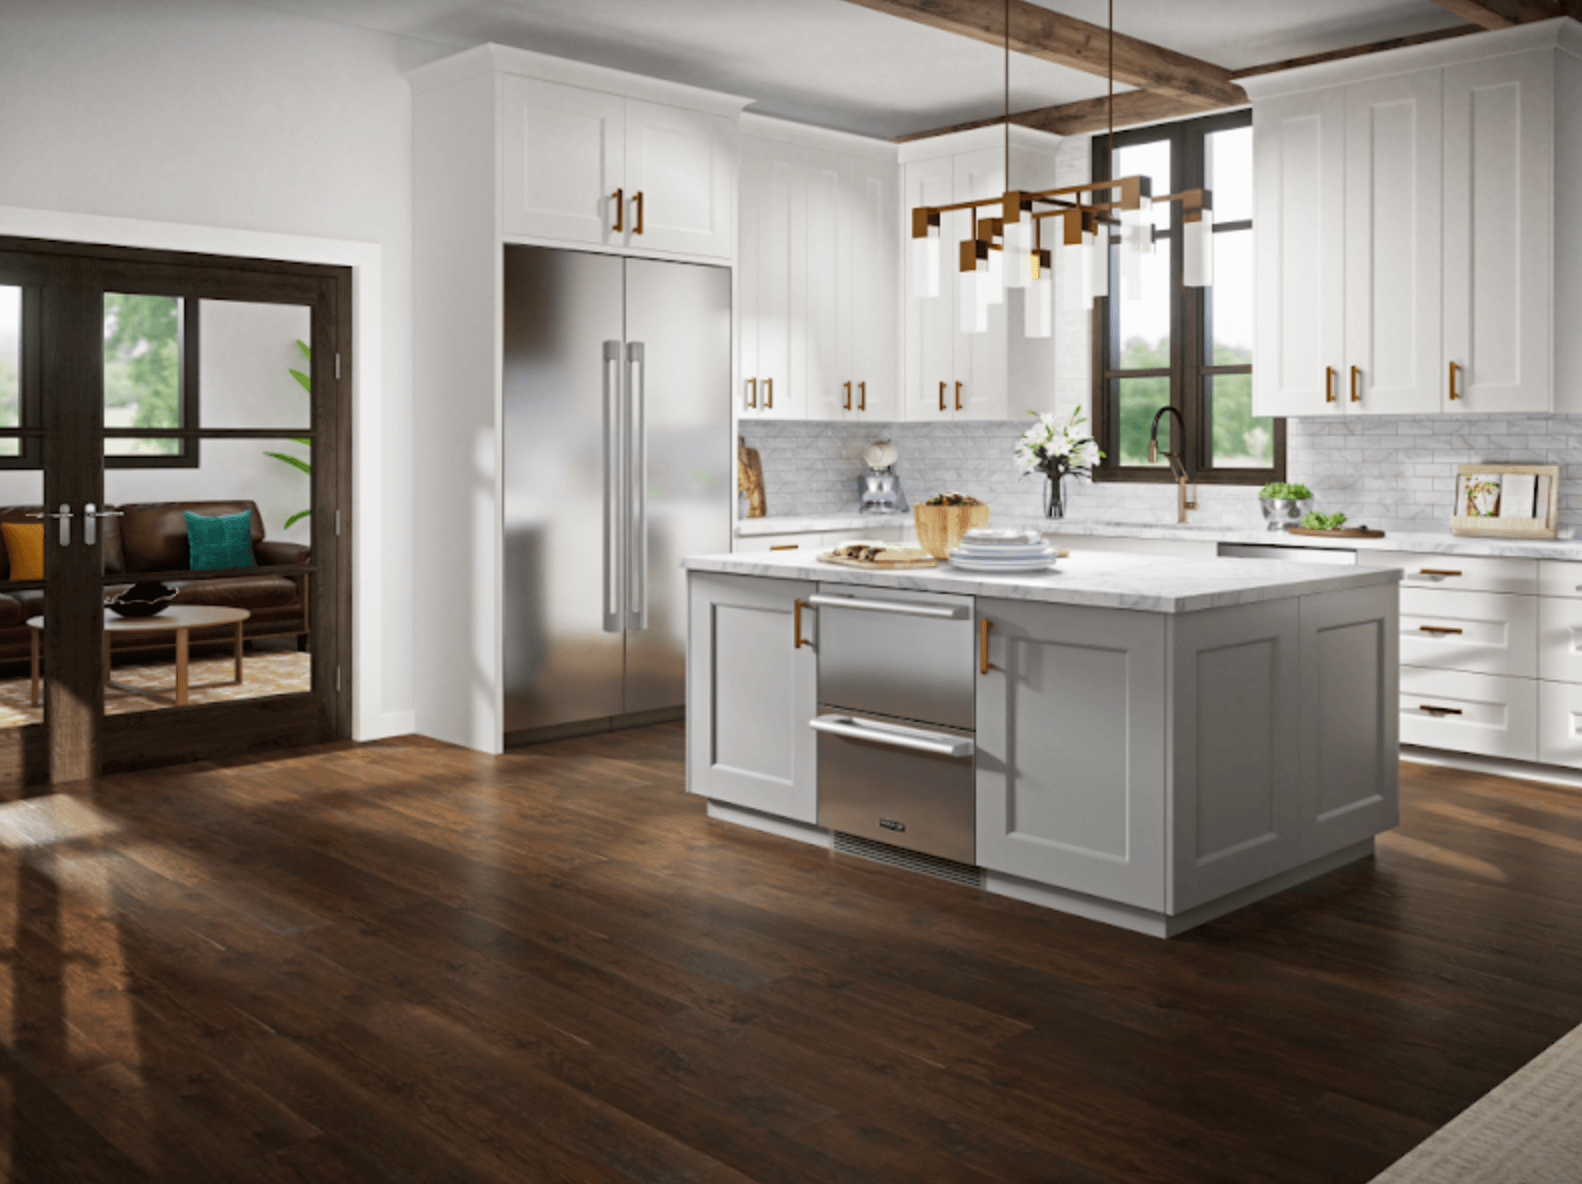 PureWeb partners with Innocean and Taylor James to present a fully immersive kitchen showroom experience for Signature Kitchen Suite